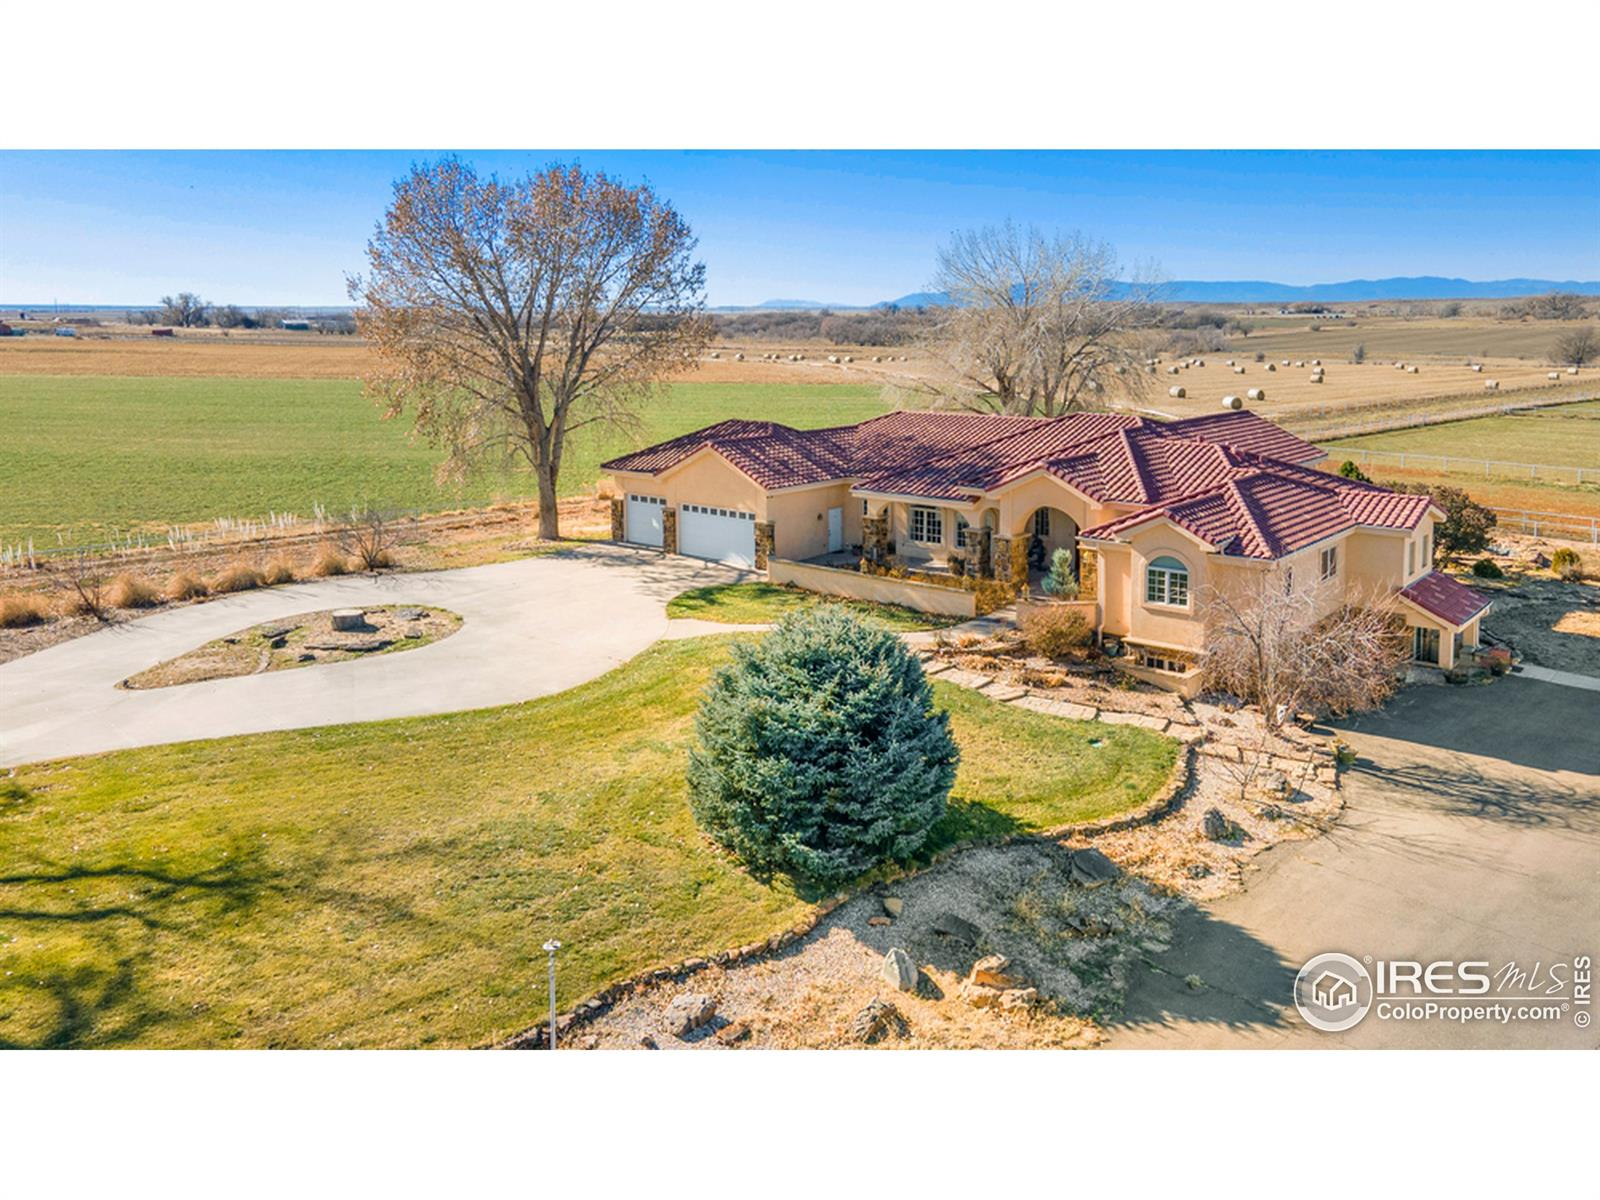 Over 131 acres of farm land, outstanding equestrian facilities, irrigated hay fields & a beautiful showpiece stucco home w/ stone accents & Spanish tile roofing. Climate controlled 12 stall barn, indoor & outdoor arenas, hay storage, breeding shed, loafing sheds, workshop, 2 barn apartments w/ arena viewing. Great room w/ cypress ceiling & arched windows. Cherry wood built-in entertainment center & a copper and granite fireplace. Gourmet kitchen w/ granite & large island. Stainless appliances, copper backsplash, Thermador gas range & double oven, & built-in refrigerator. Formal dining with tray ceilings & built in china cabinet. The master wing has a large bedroom, luxury bath, a large custom closet, & study w/ granite desk, fireplace & bookcases. The guest has 3 bedrooms, w/ en suite baths. Finished walkout basement complete with wet bar/ bar seating, a rec room, theater room, dog wash station, & bedroom. 40 shares of Bessemer ditch water. Multiple virtual tours & more info available!